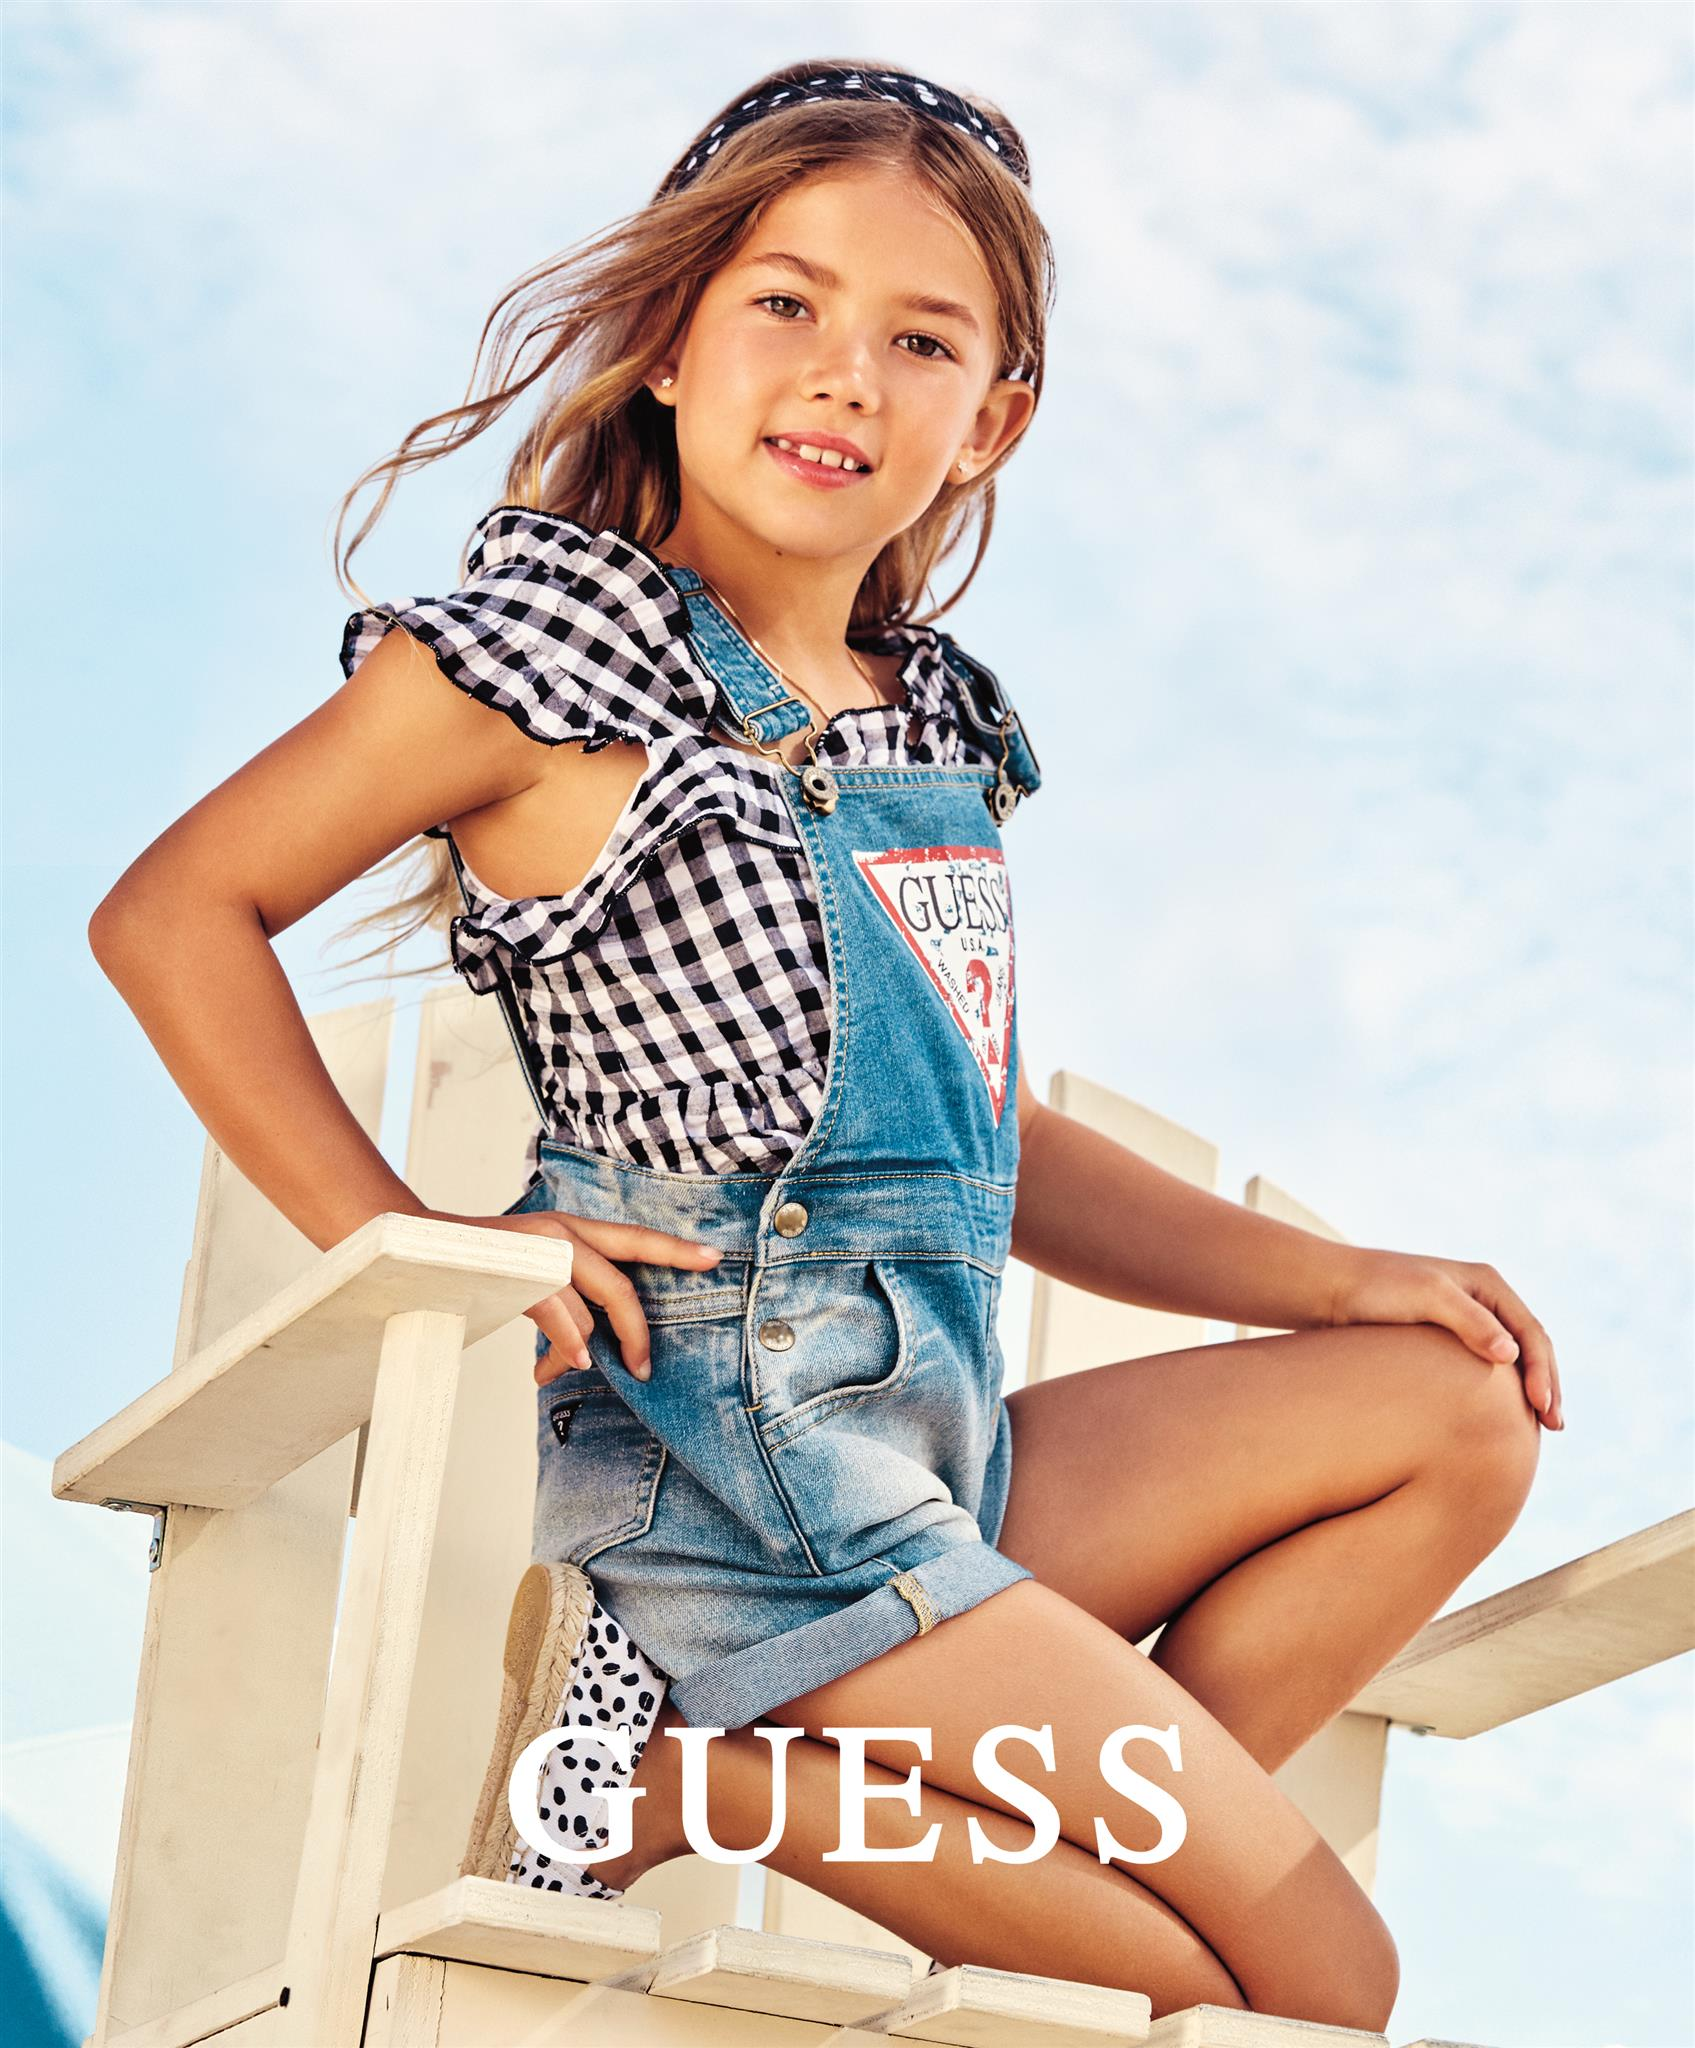 599_GUESS_Kids_Sp18_V10